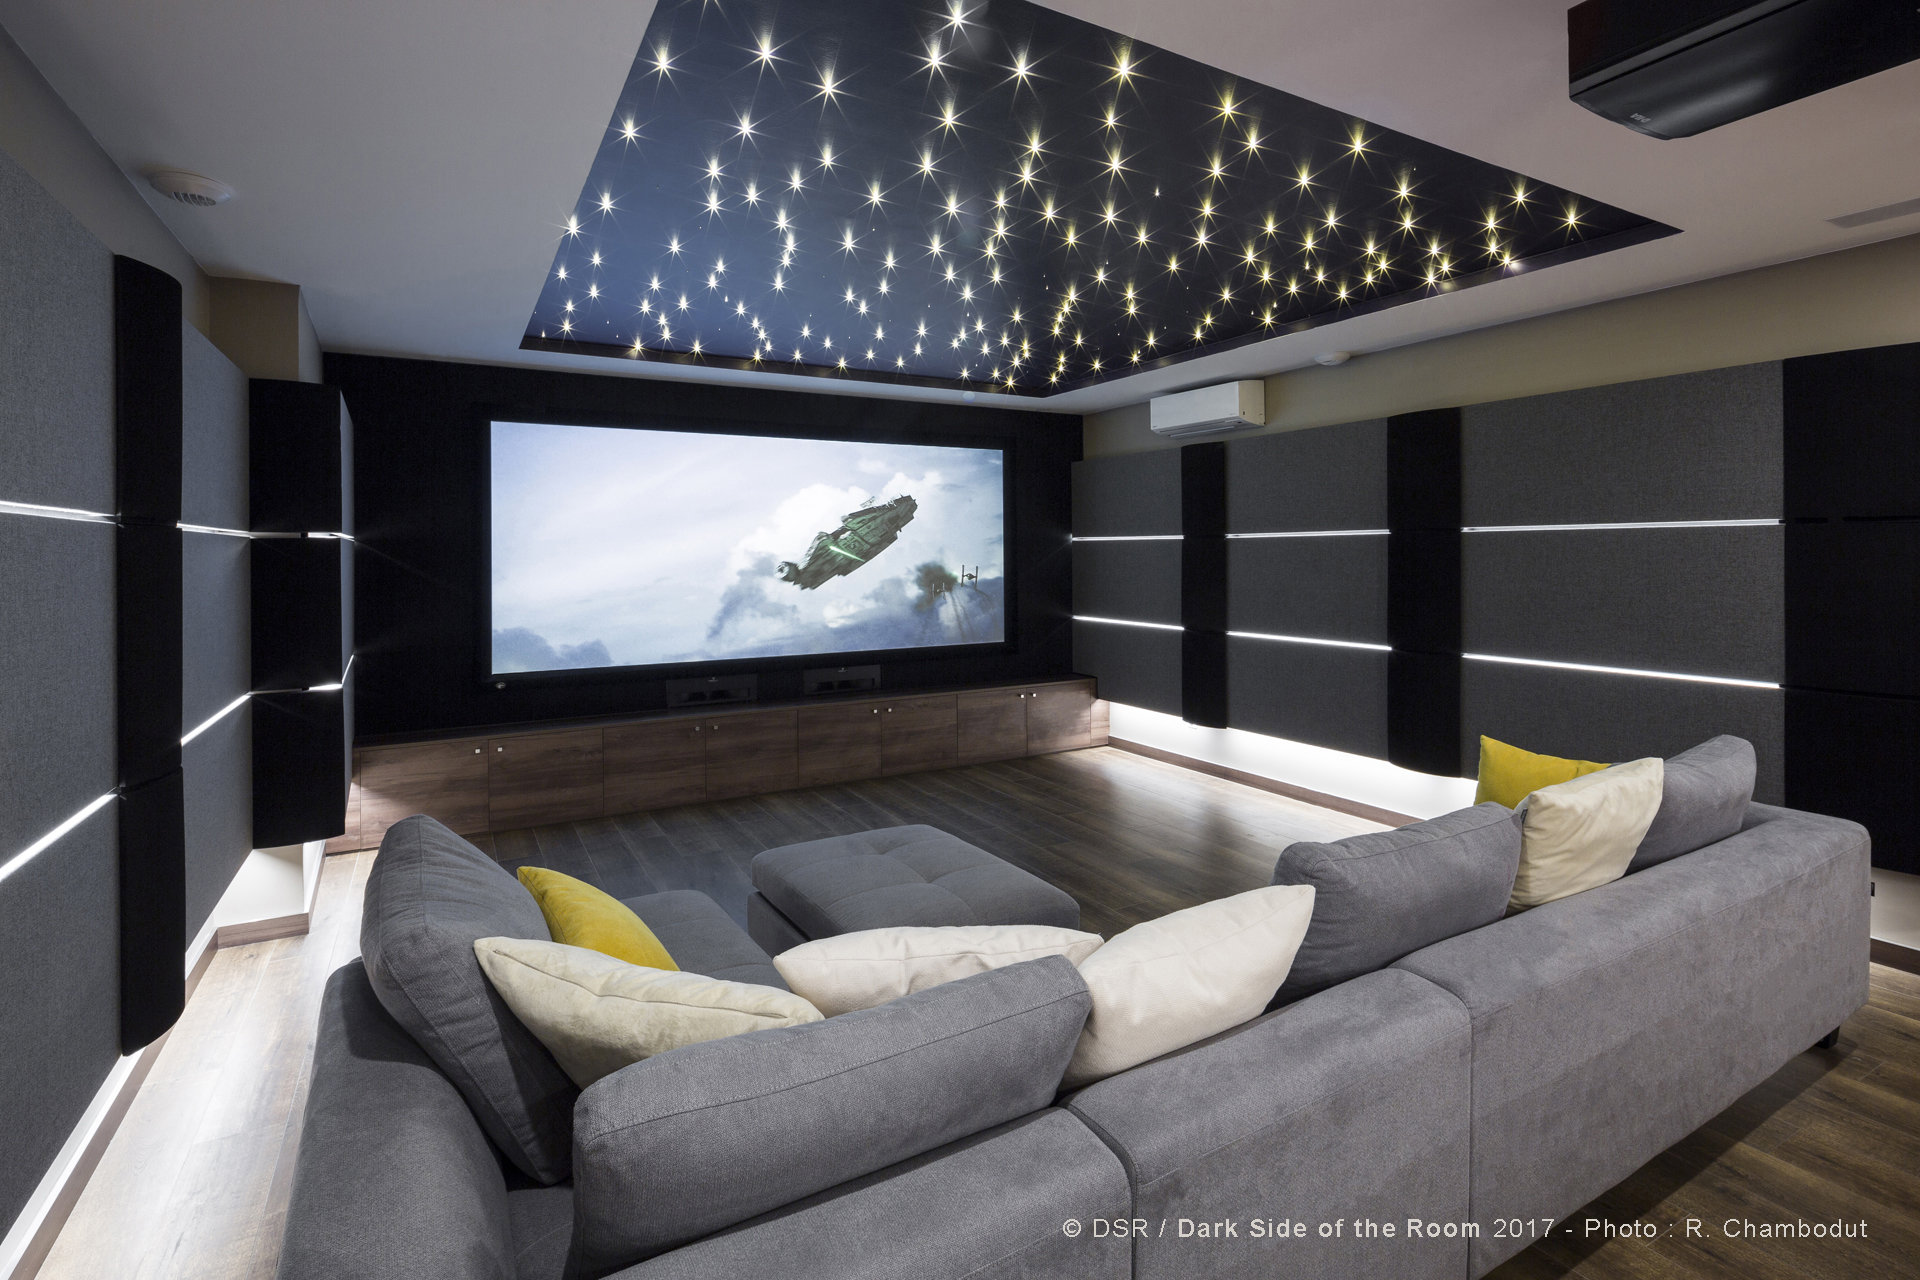 Joining A Project Late Is Never A Desirable Situation For An Installer.....  So We Applaud DSR For Their Work On This Fabulous Media Room In France!